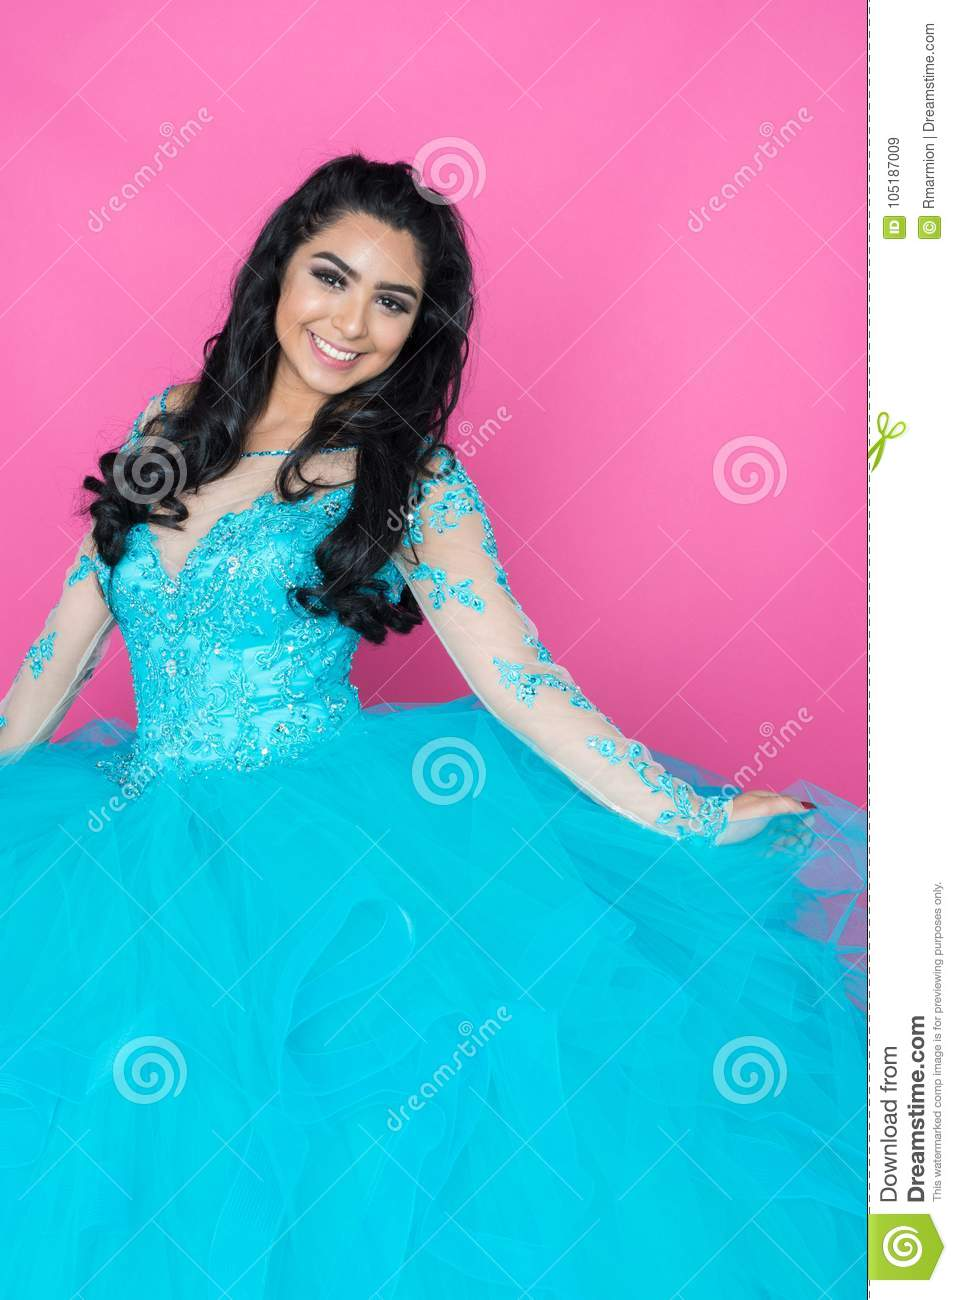 Teen In Prom Dress stock image. Image of quinceanera - 105187009